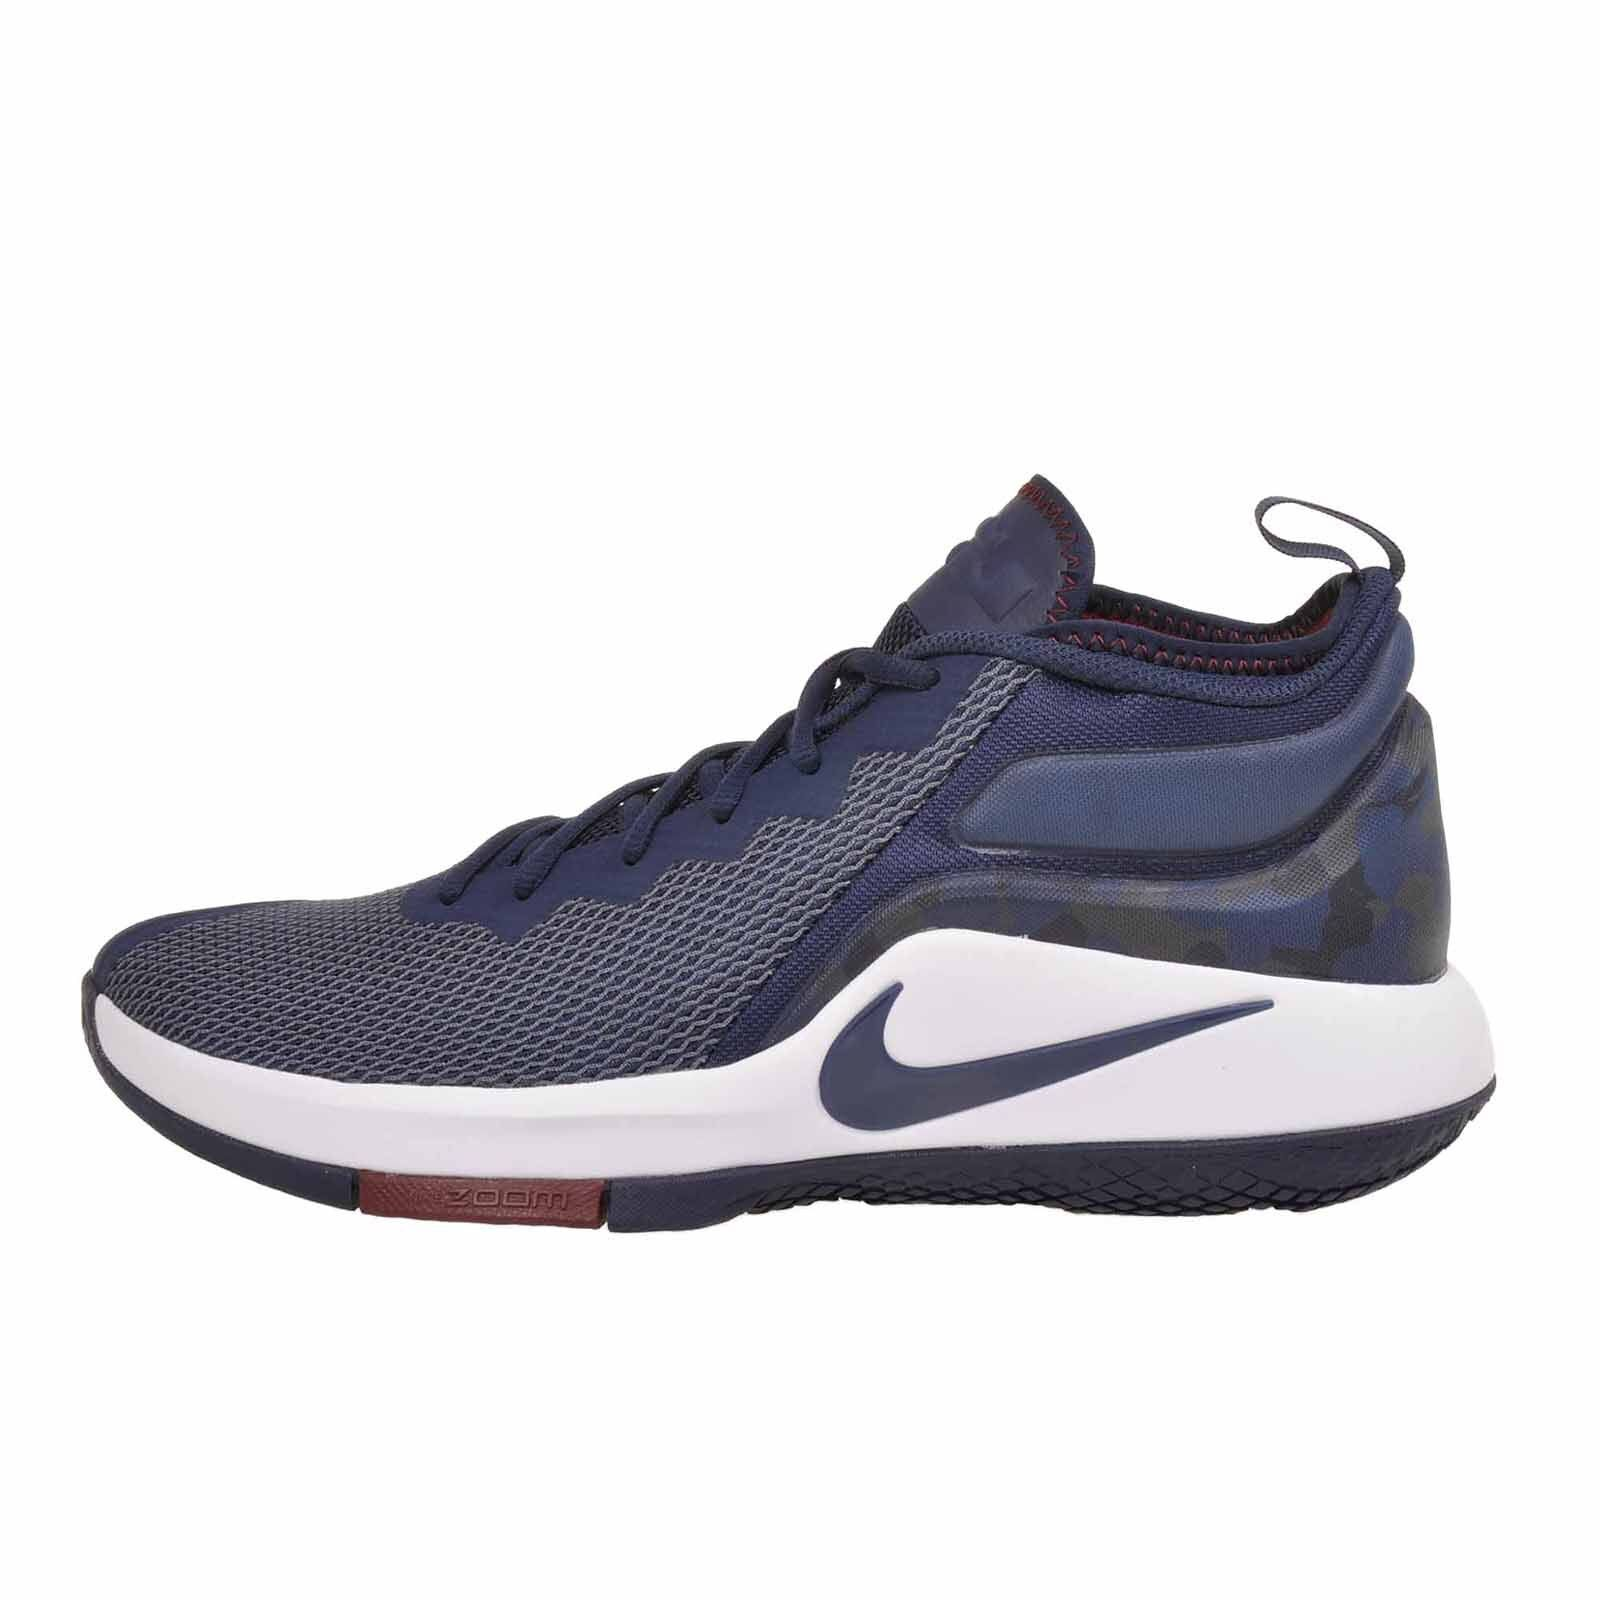 Nike Lebron Witness II Basketball Mens shoes College Navy 942518-406